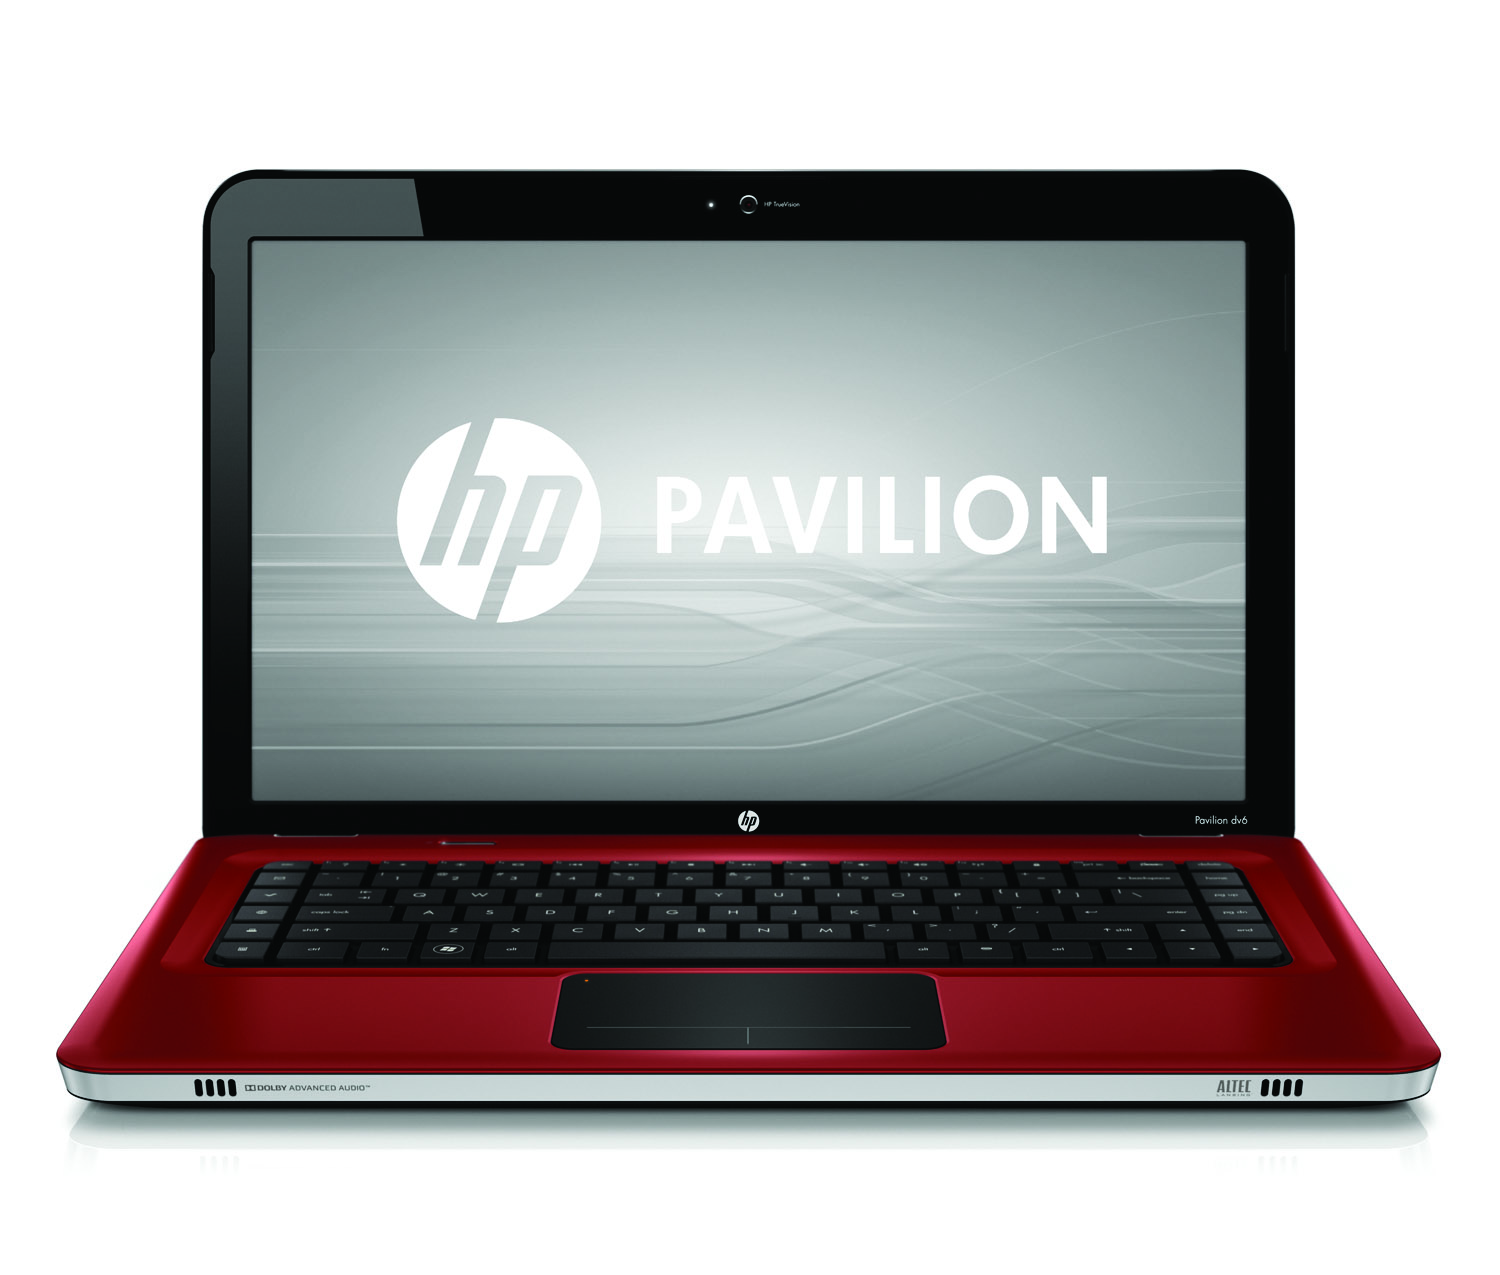 HP Pavilion dv6 Entertainment PC, sonoma red, front open